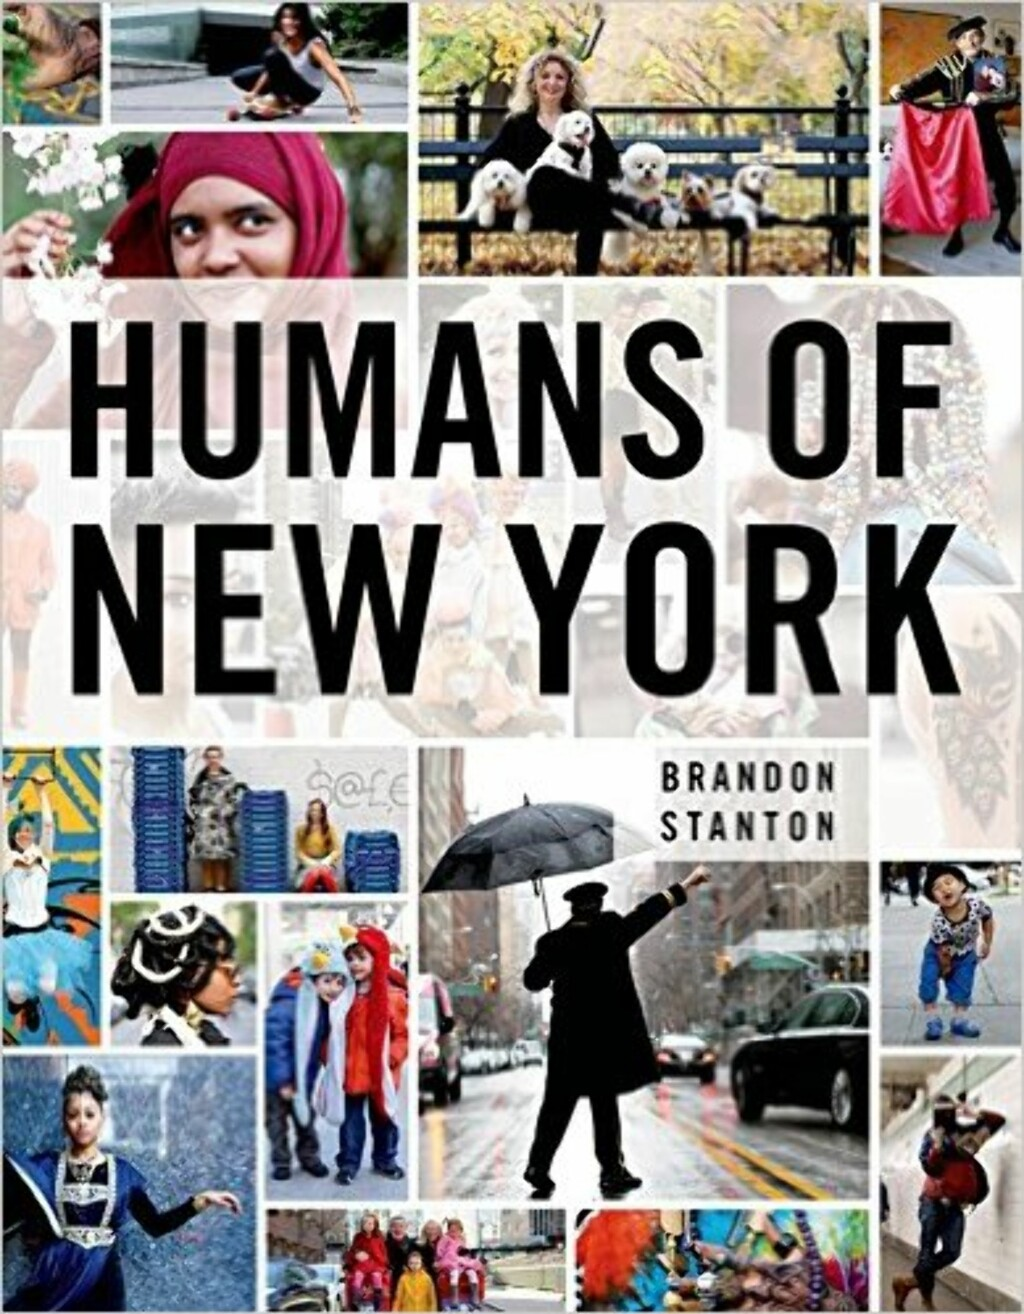 Humans Of New York via Amazon.com, kr 158.